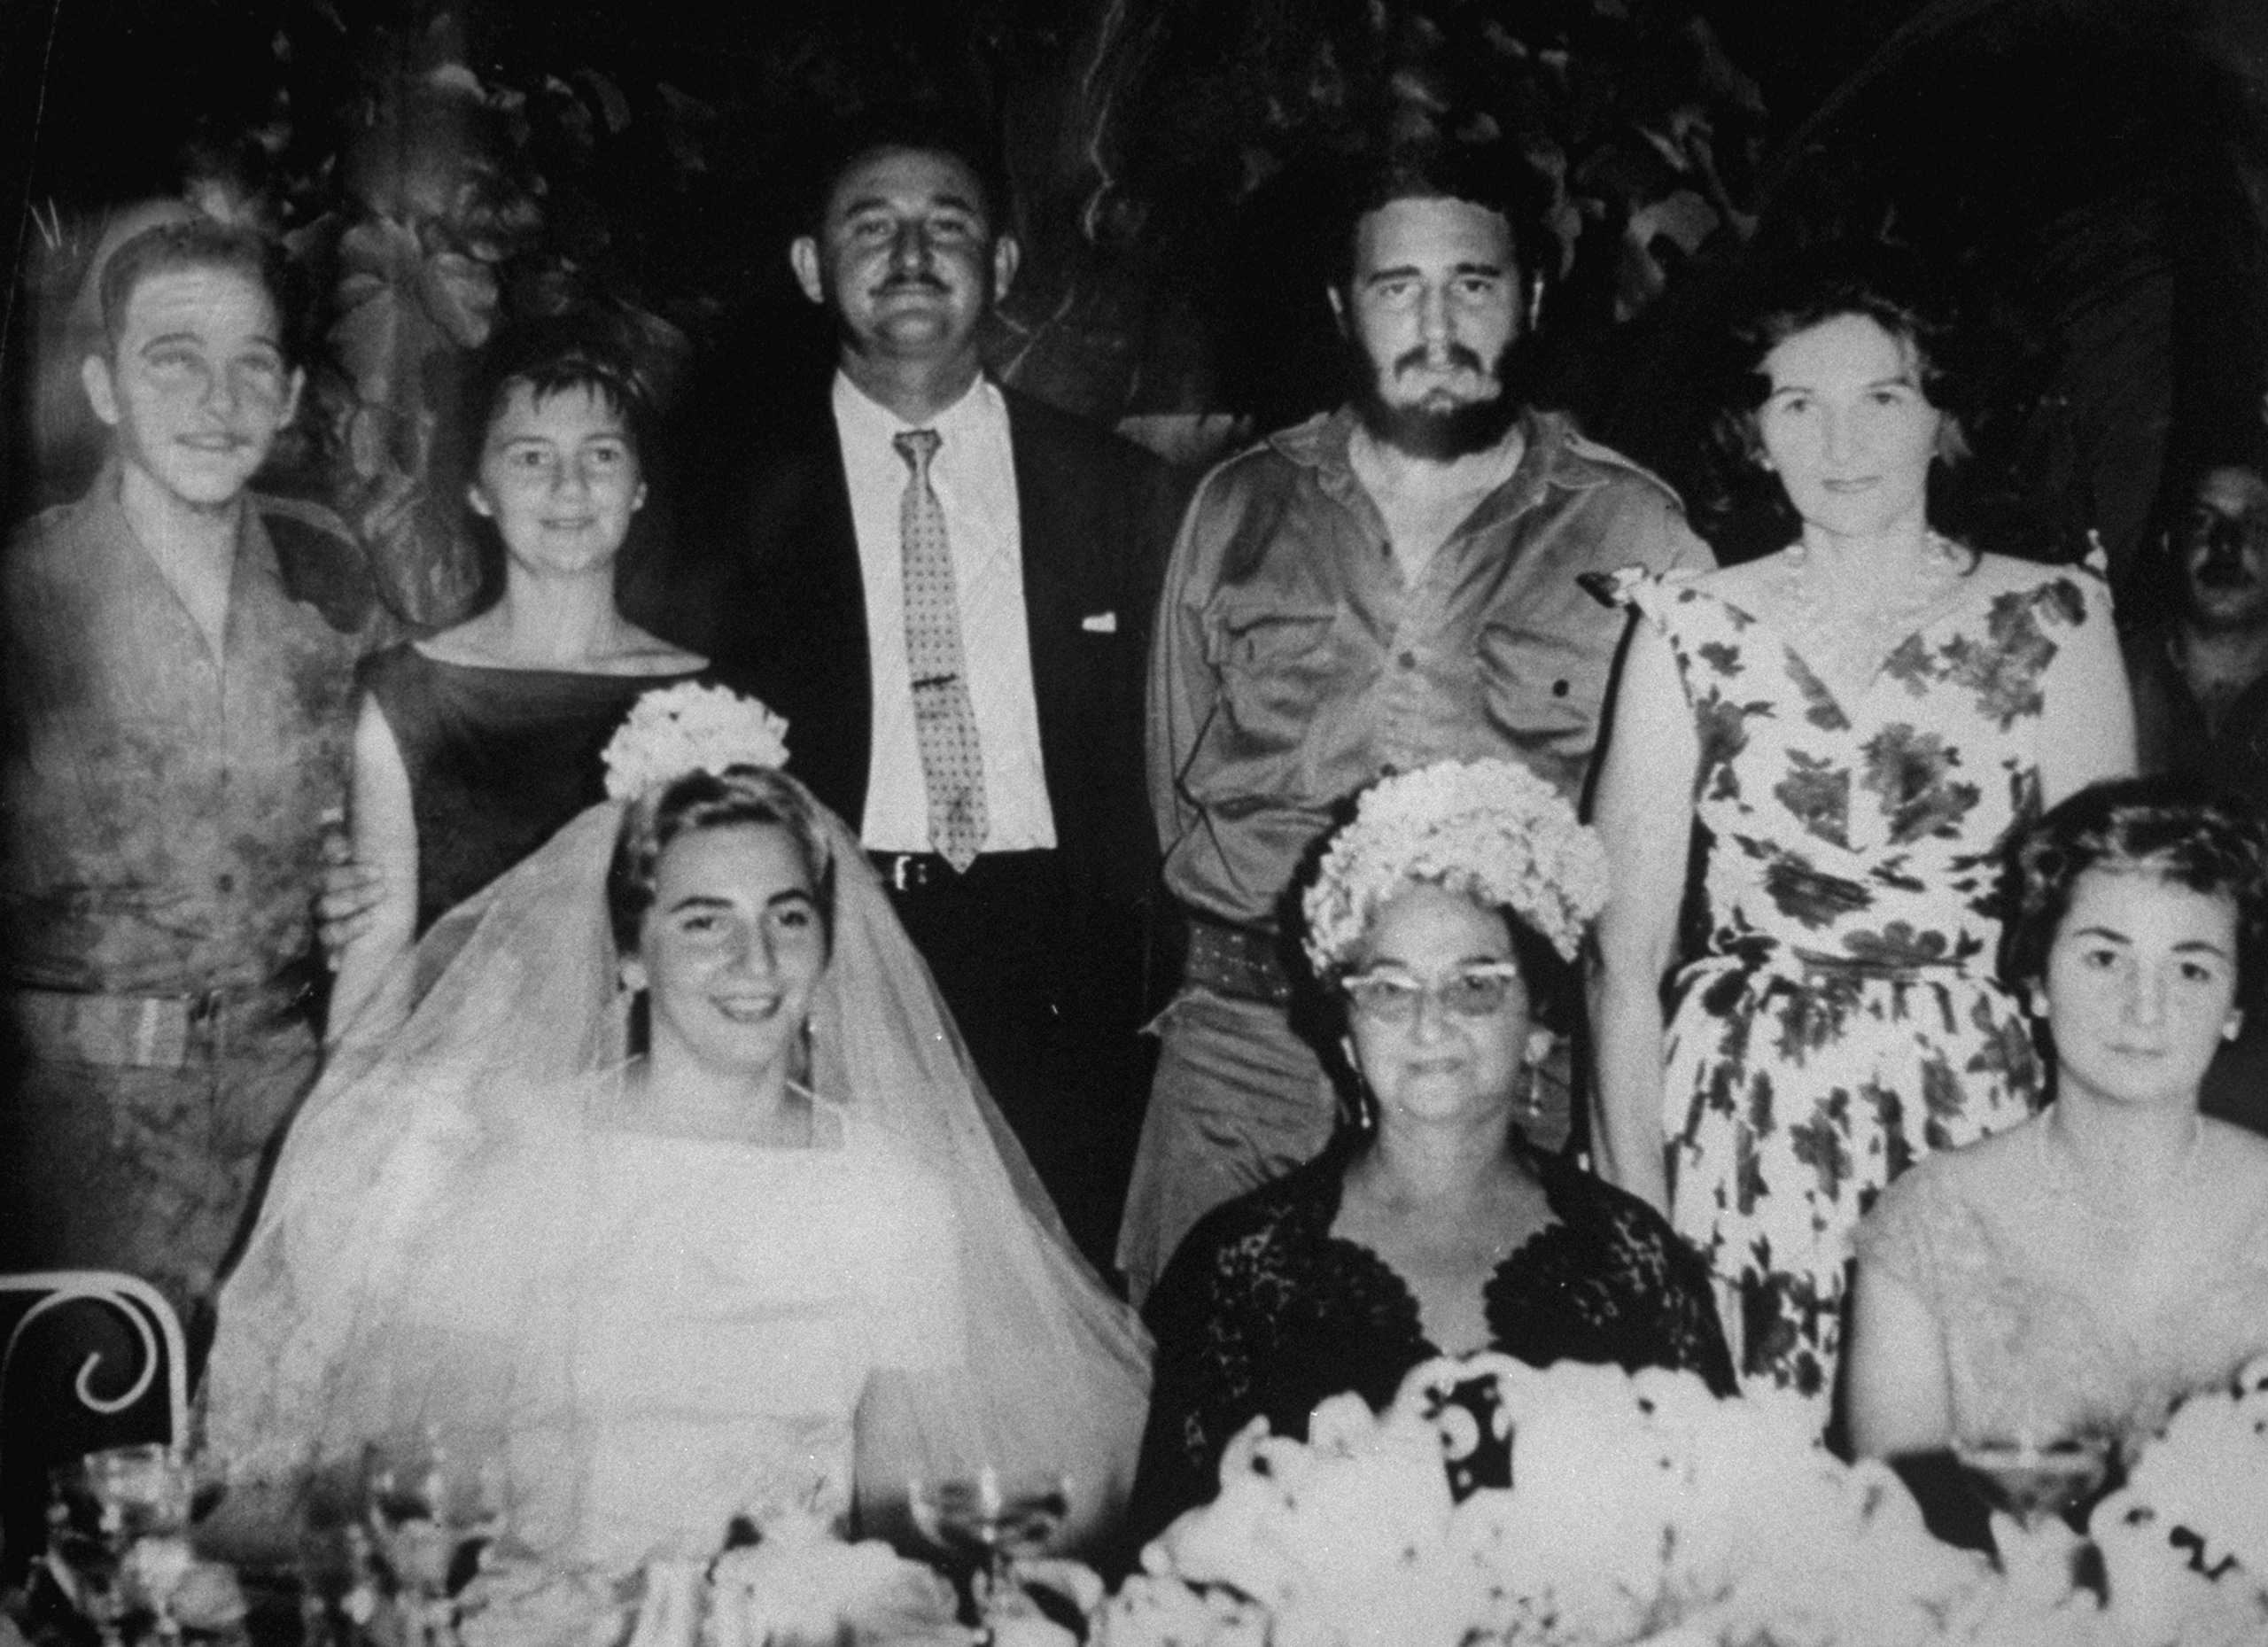 Fidel Castro, second from right in back row, attends the wedding of a sister.